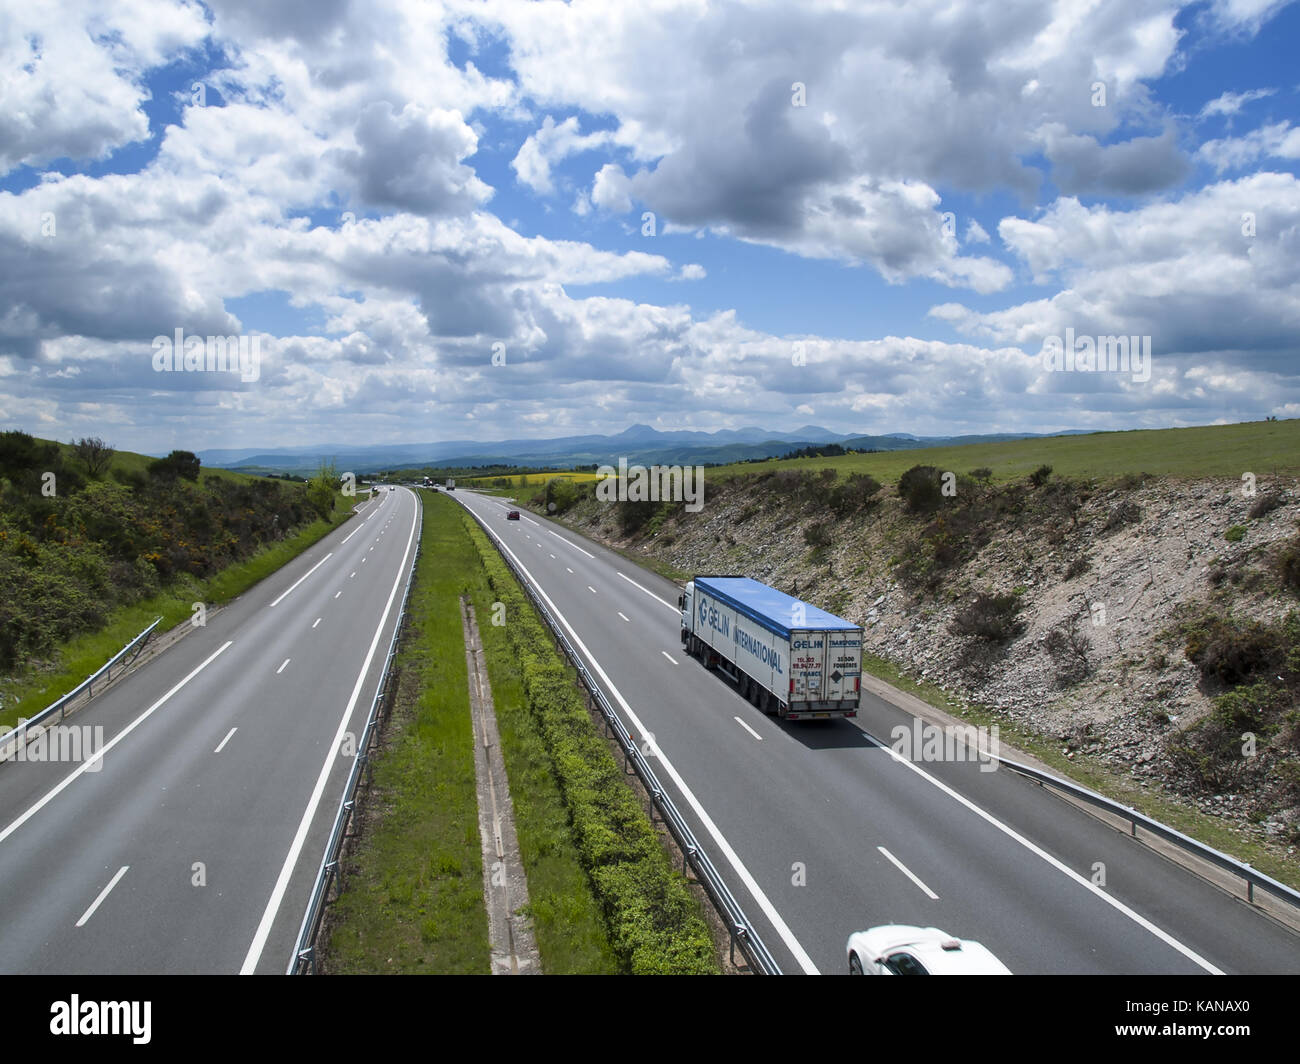 a75 road stock photos a75 road stock images alamy. Black Bedroom Furniture Sets. Home Design Ideas